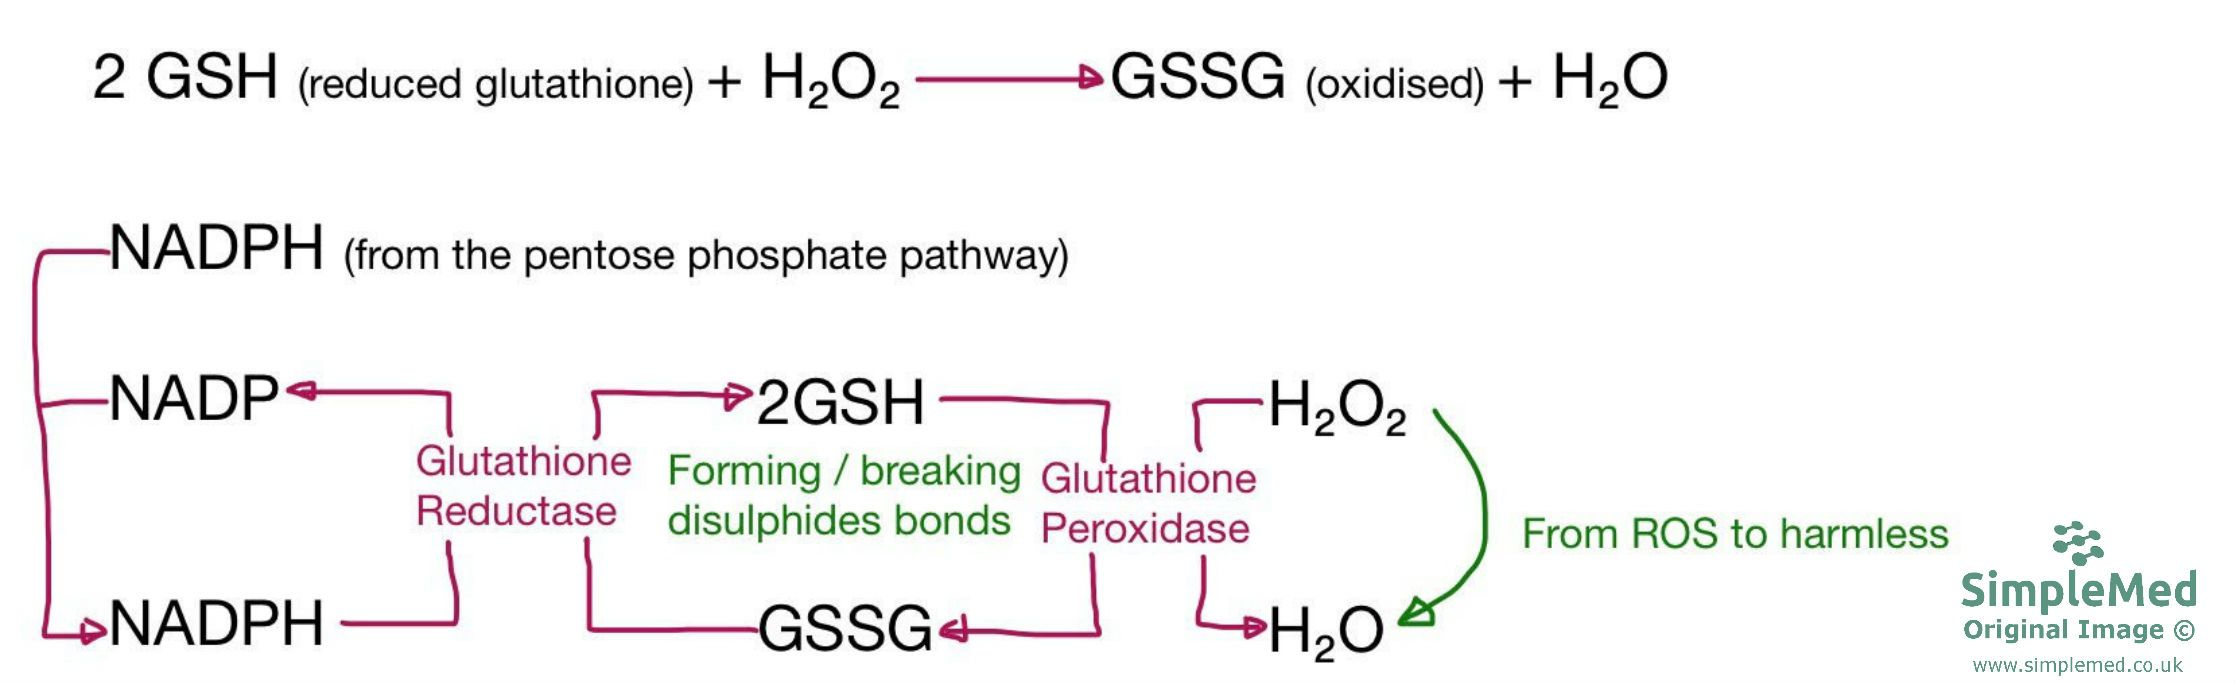 Glutathione Pathway Diagram SimpleMed